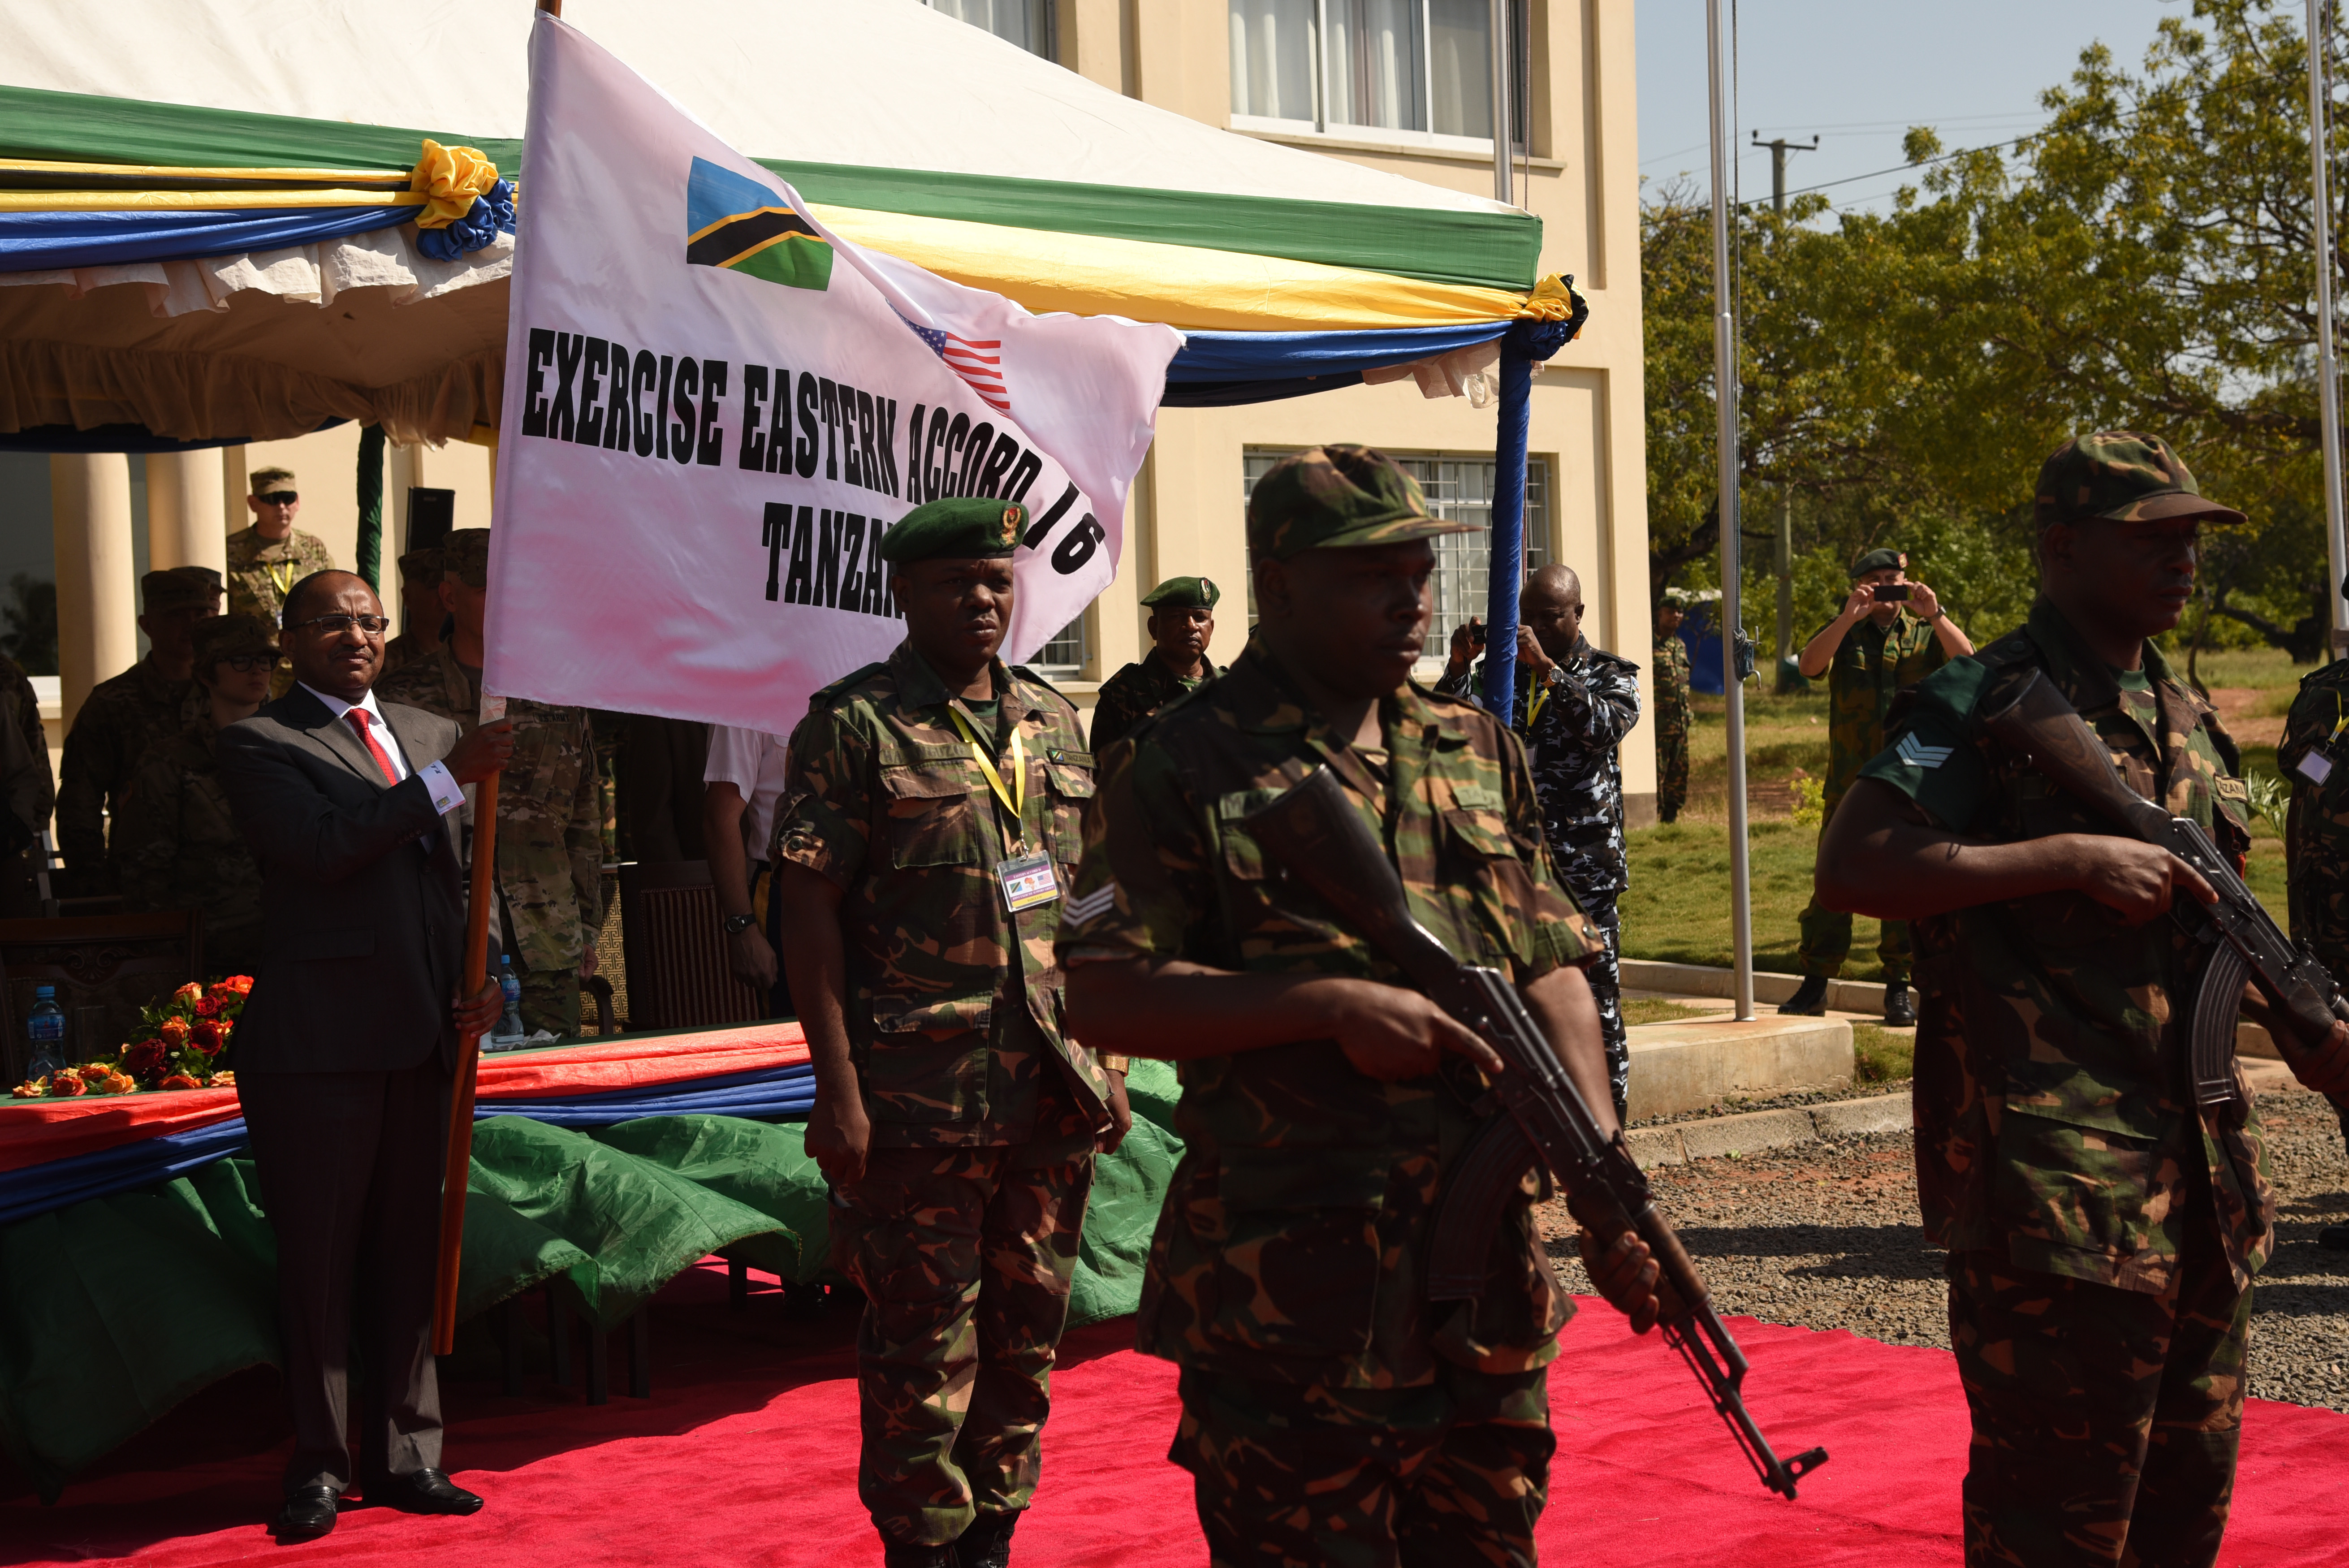 DAR ES SALAAM, Tanzania – Hussein Ali Mwyini, Minister of Defense and National Service, presents the Eastern Accord 2016 flag representing the commencement of the command post exercise the Tanzanian Peacekeeping Training Centre on July 11, 2016, in Dar es Salaam, Tanzania. EA16 is an annual, combined, joint military exercise that brings together partner nations to practice and demonstrate proficiency in conducting peacekeeping operations. (U.S. Air Force photo by Staff Sgt. Tiffany DeNault/Released)